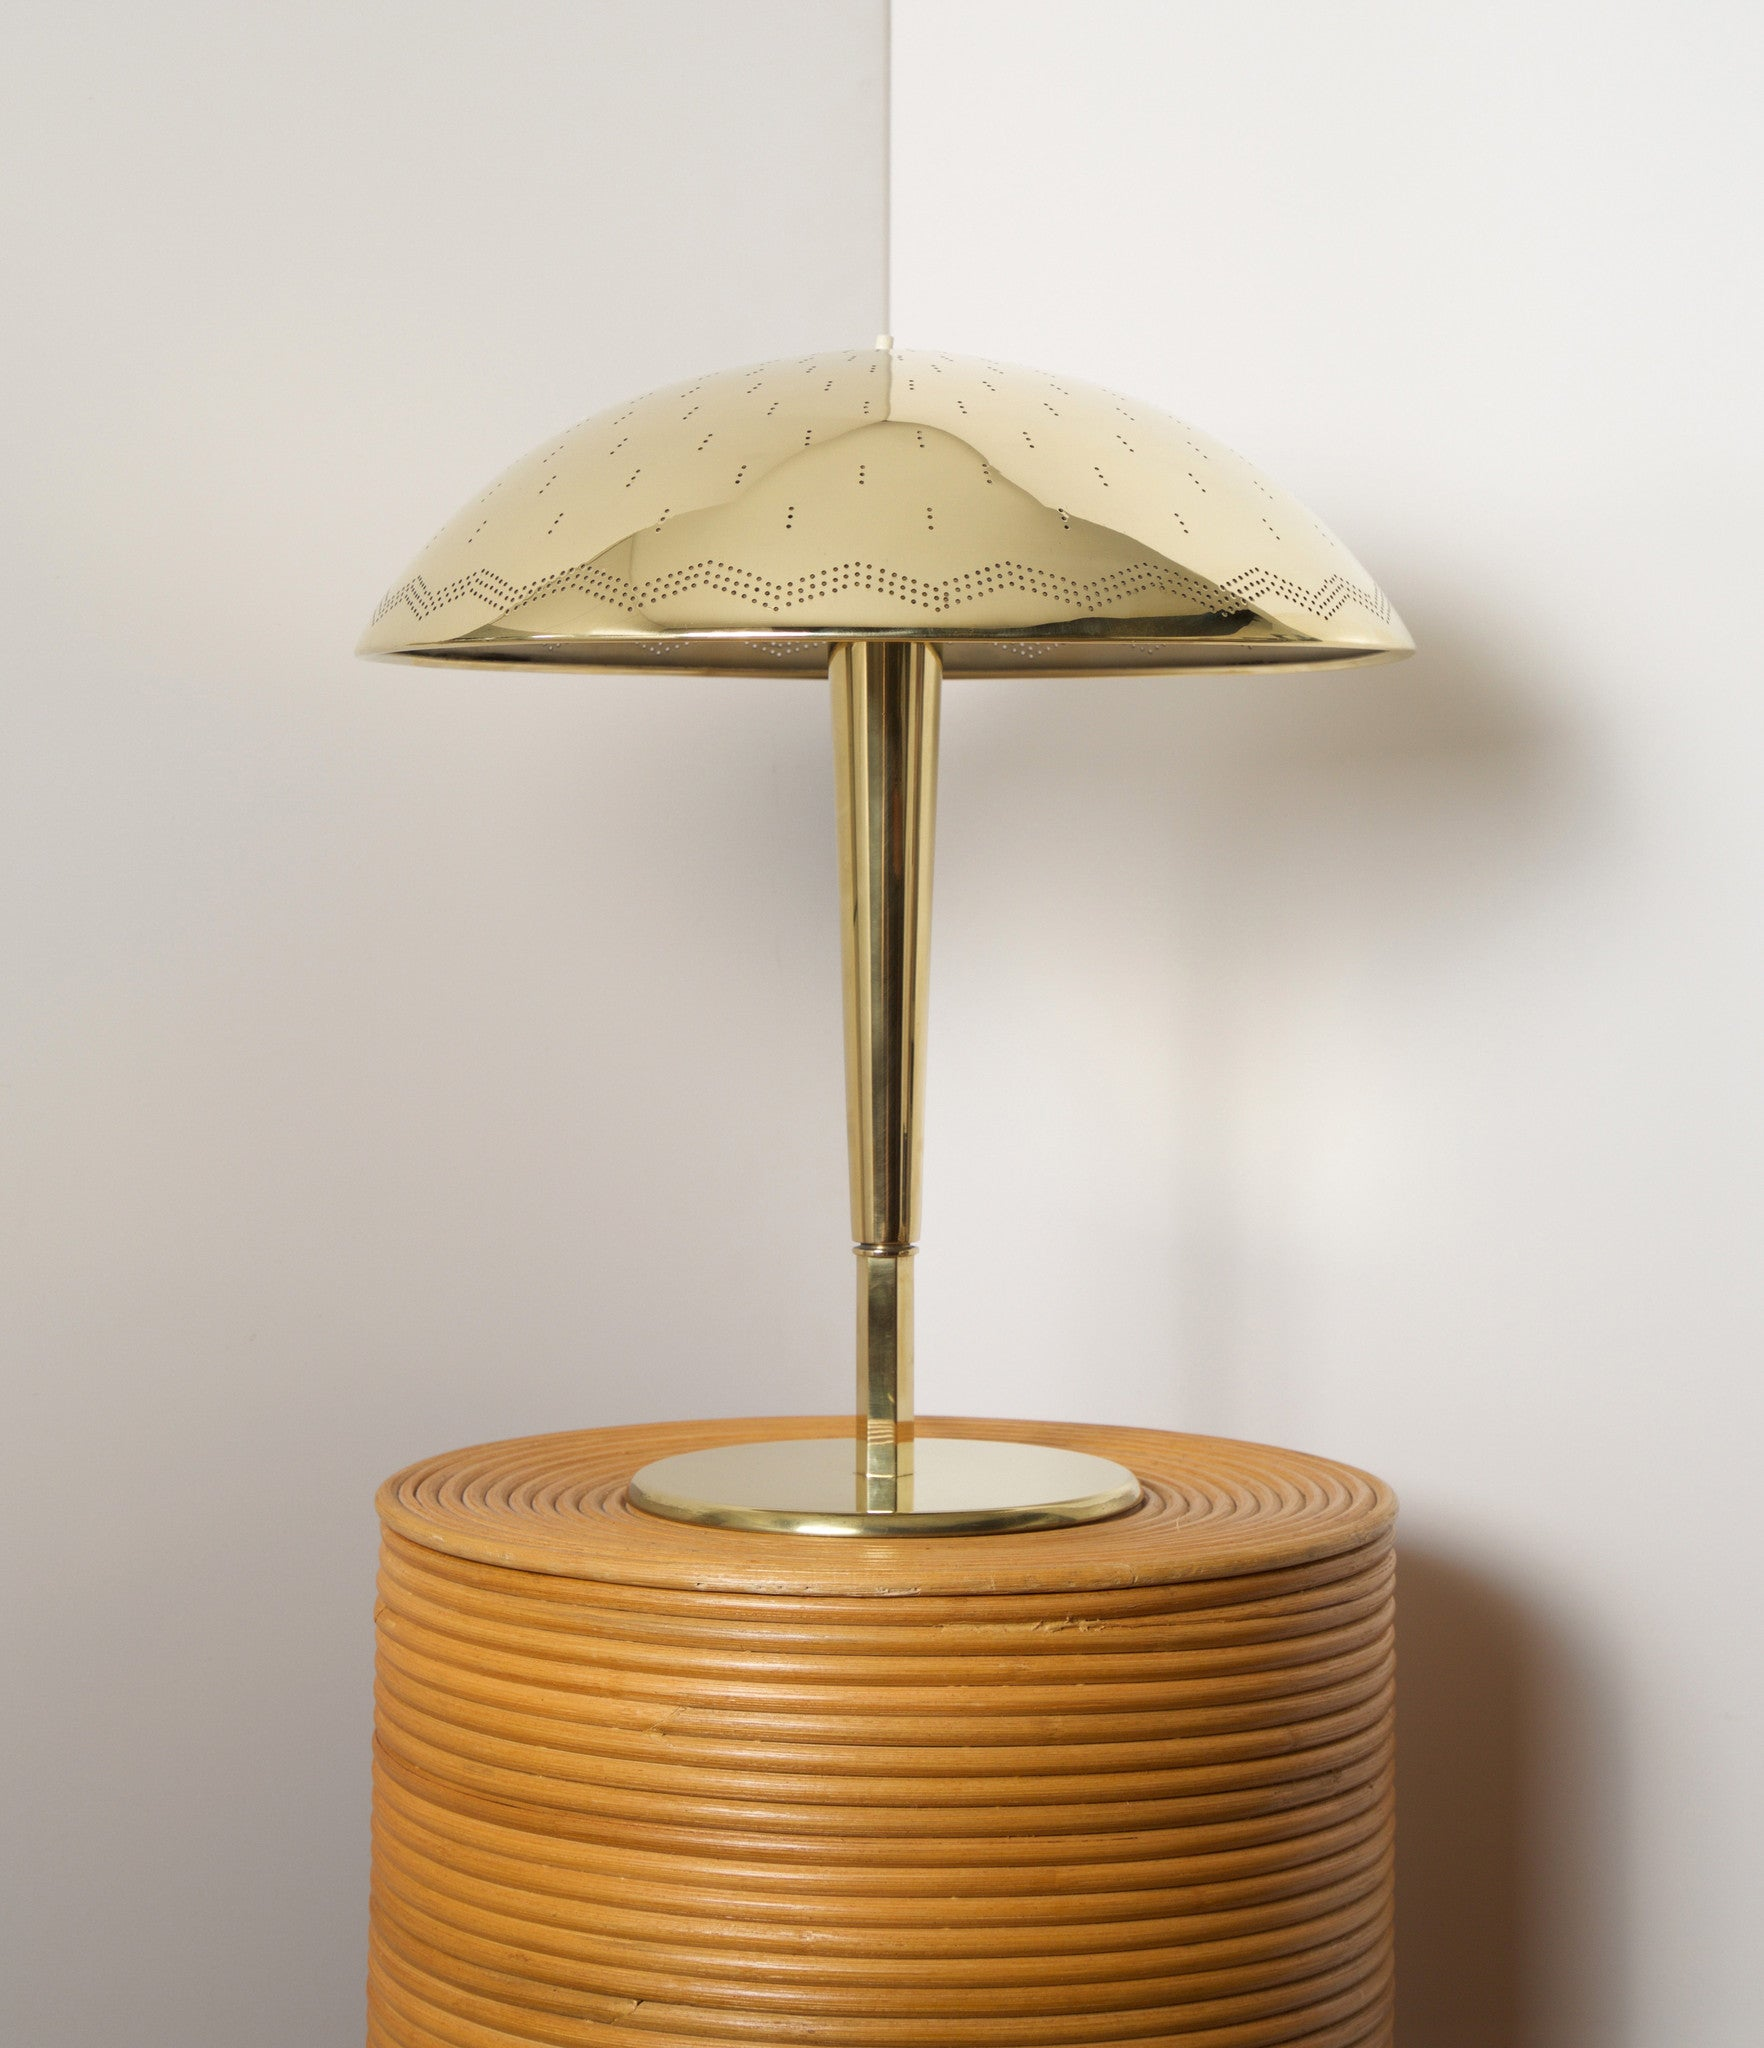 Paavo Tynell, Pair of Table Lamps, Model 5061, Taito Oy, Finland, 1940s